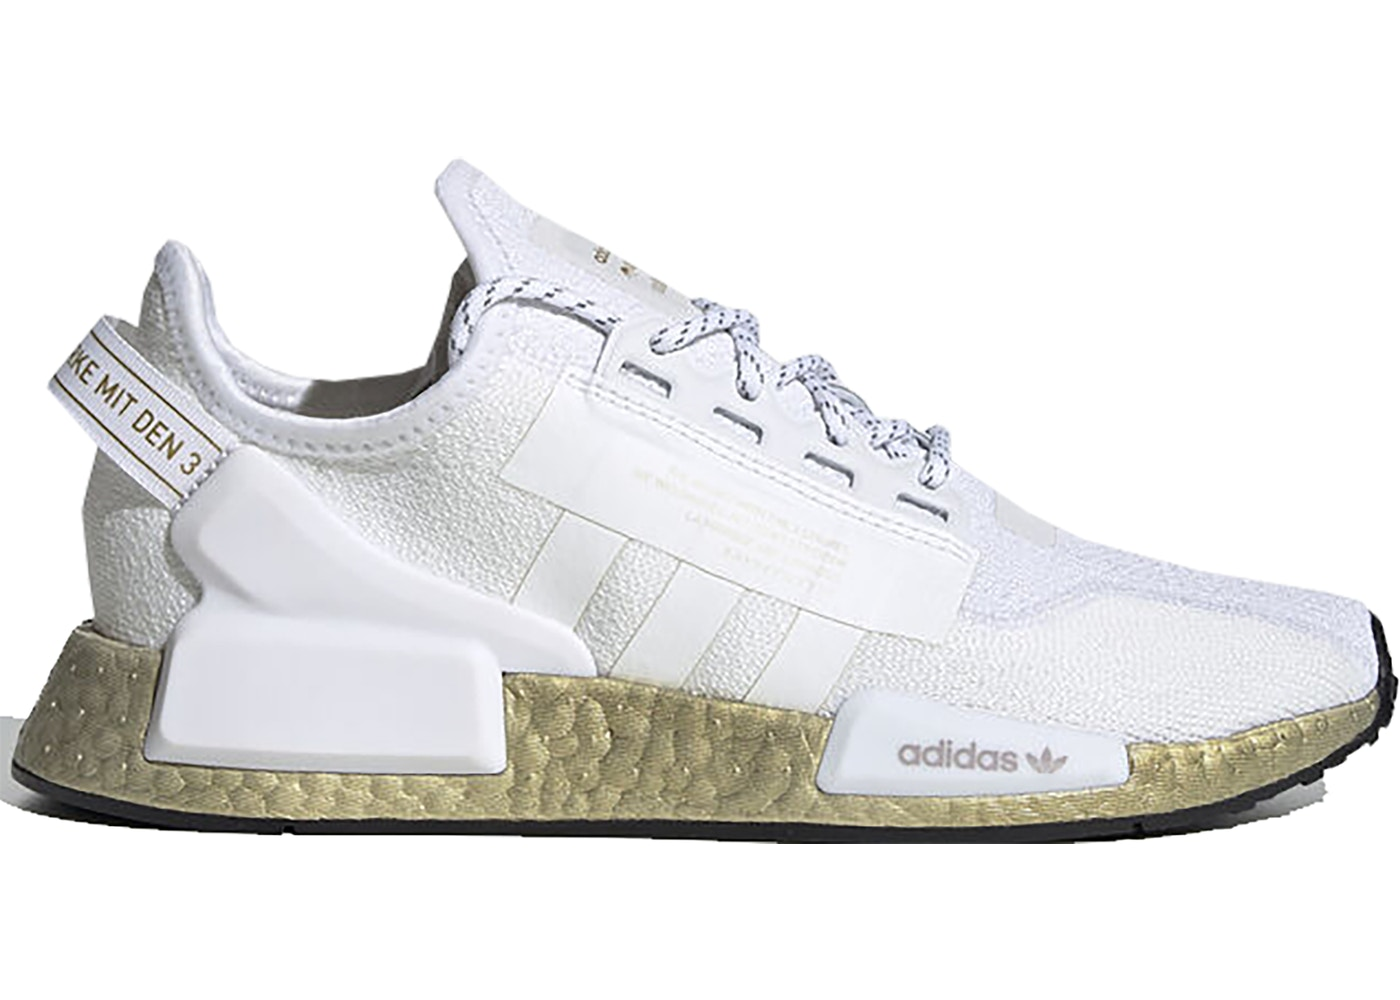 Buy Adidas Nmd V2 Shoes Deadstock Sneakers